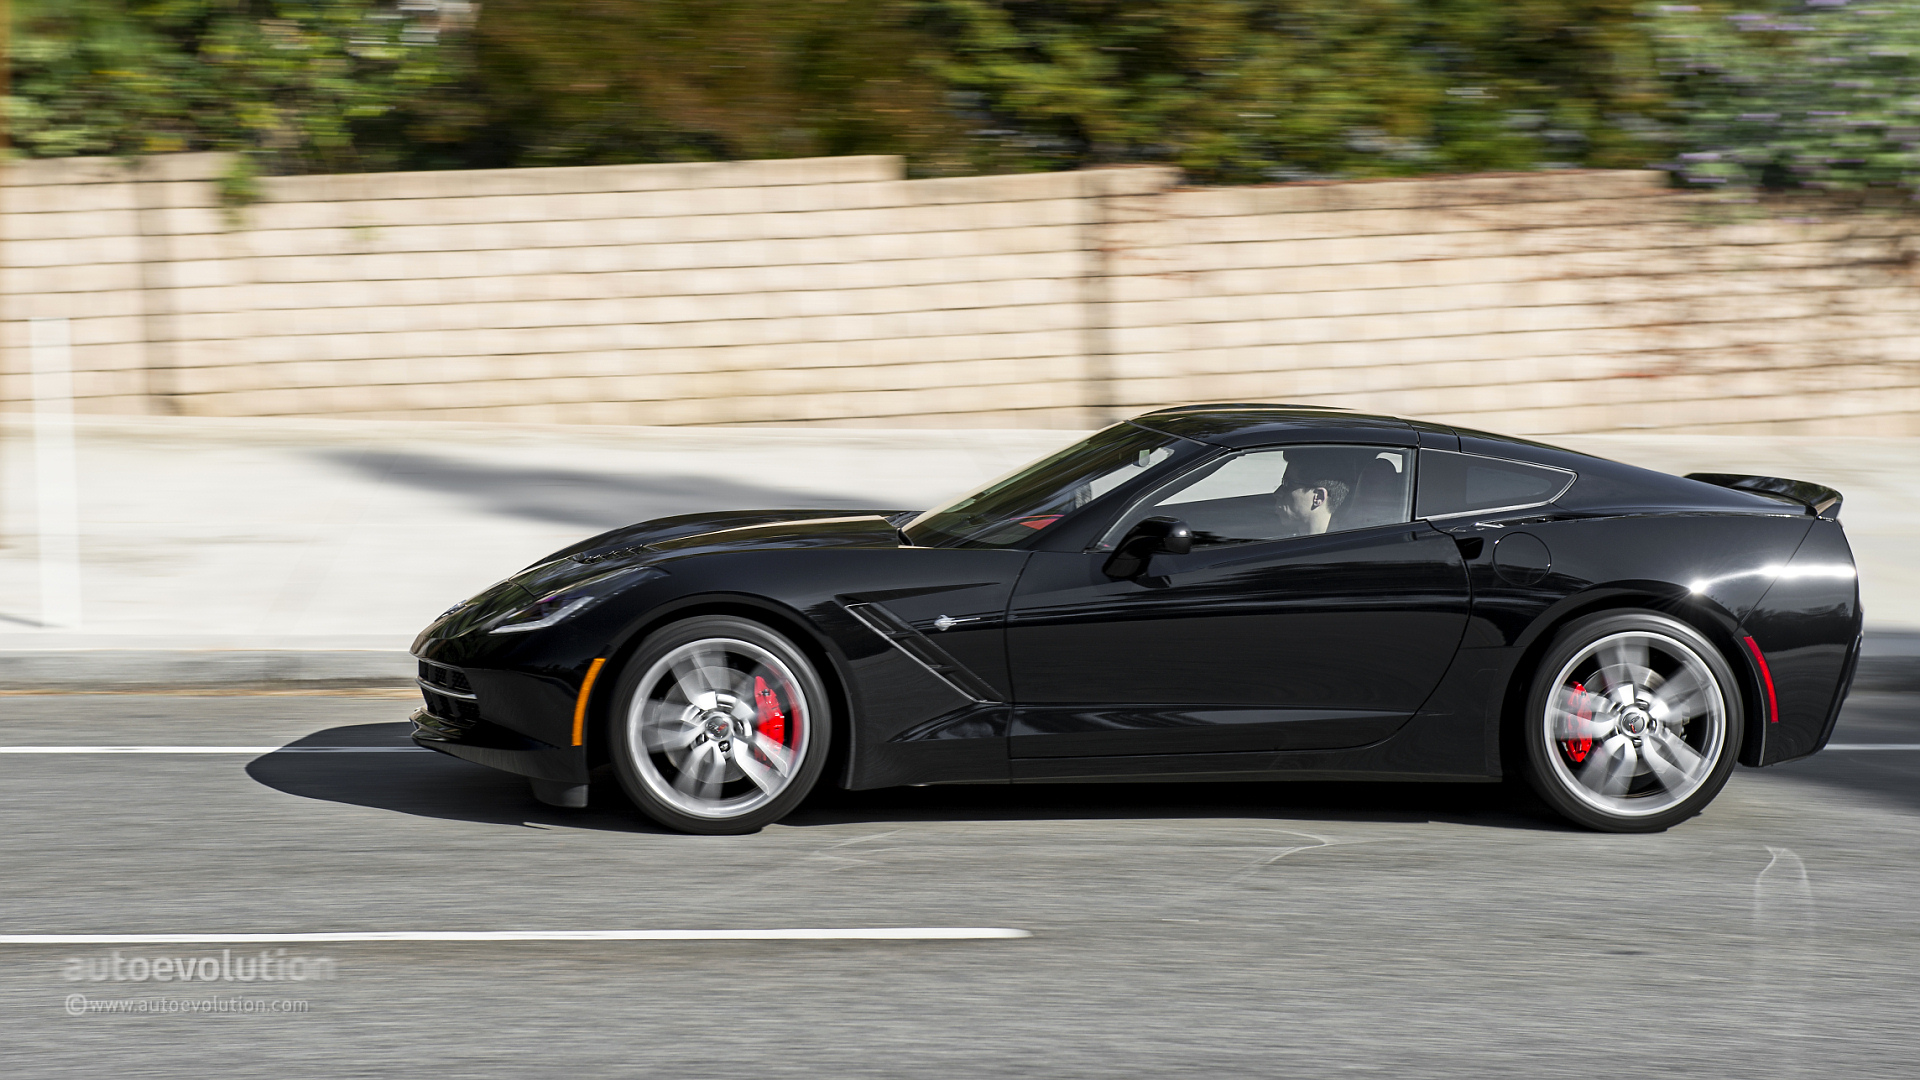 2014 chevrolet corvette stingray review 2014. Cars Review. Best American Auto & Cars Review